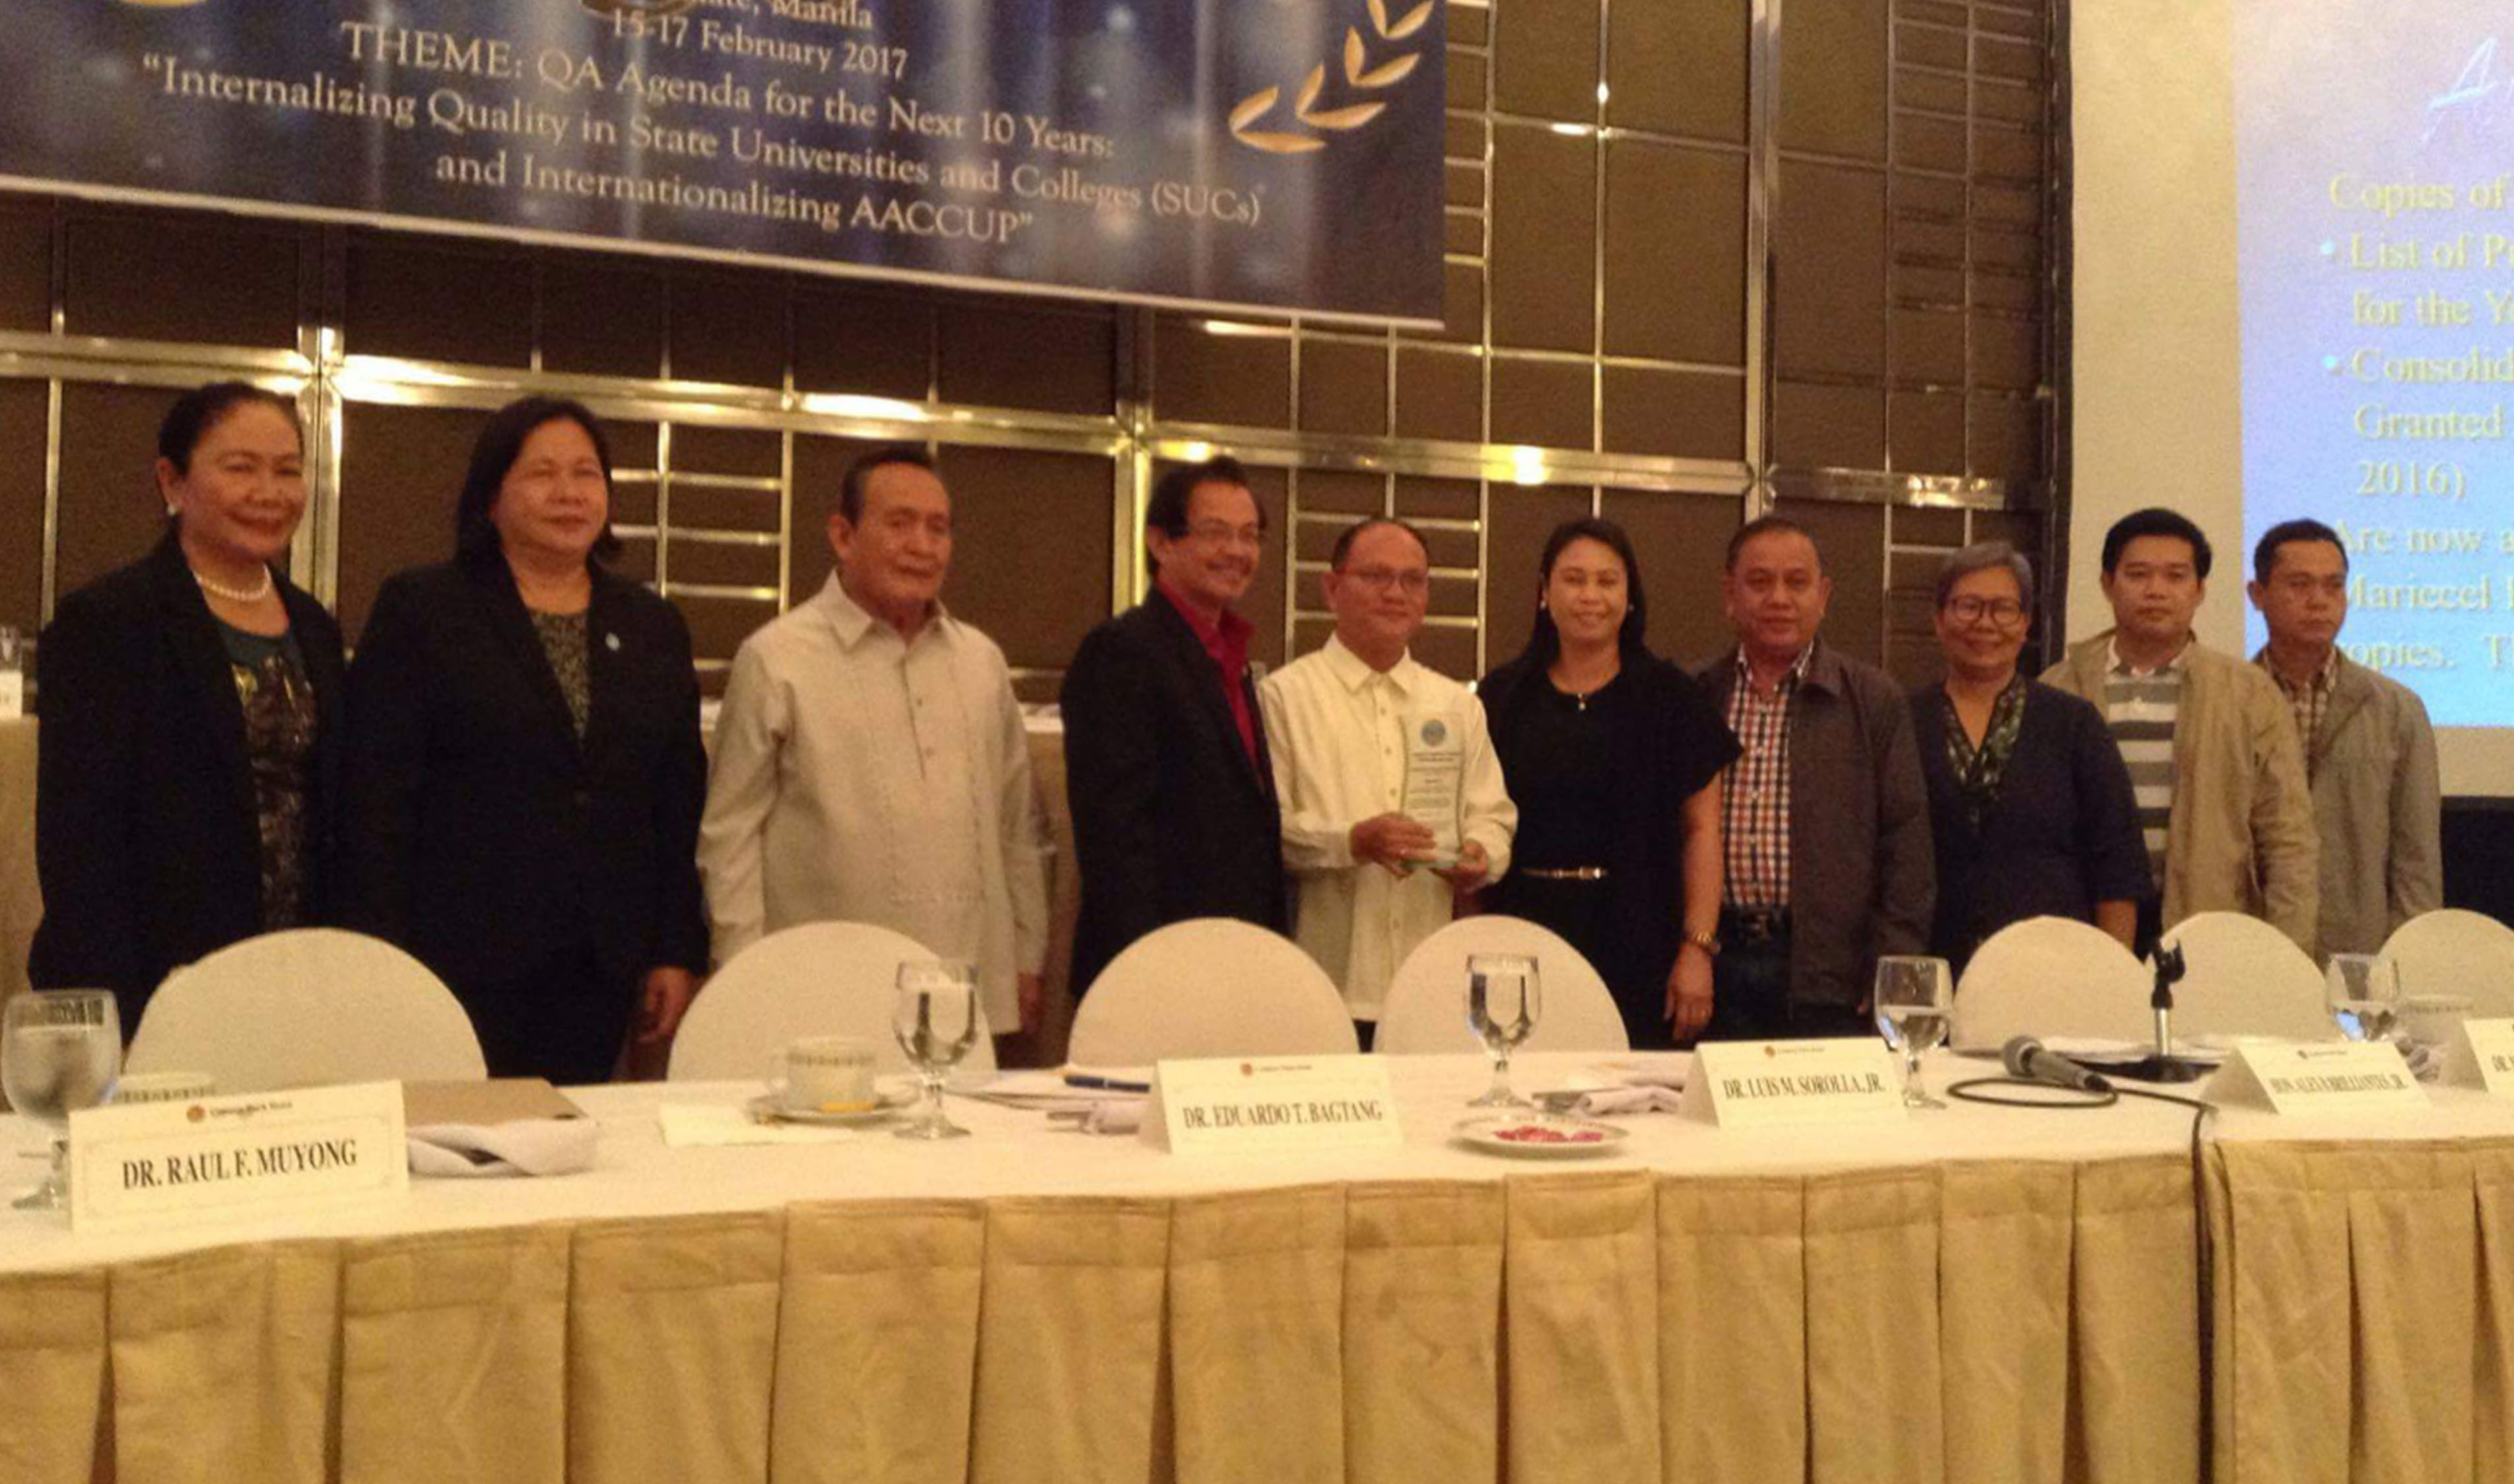 Dr. Raul F. Muyong and Dr. Renelda Nacianceno (6th and 5th from right) with other awardees at the